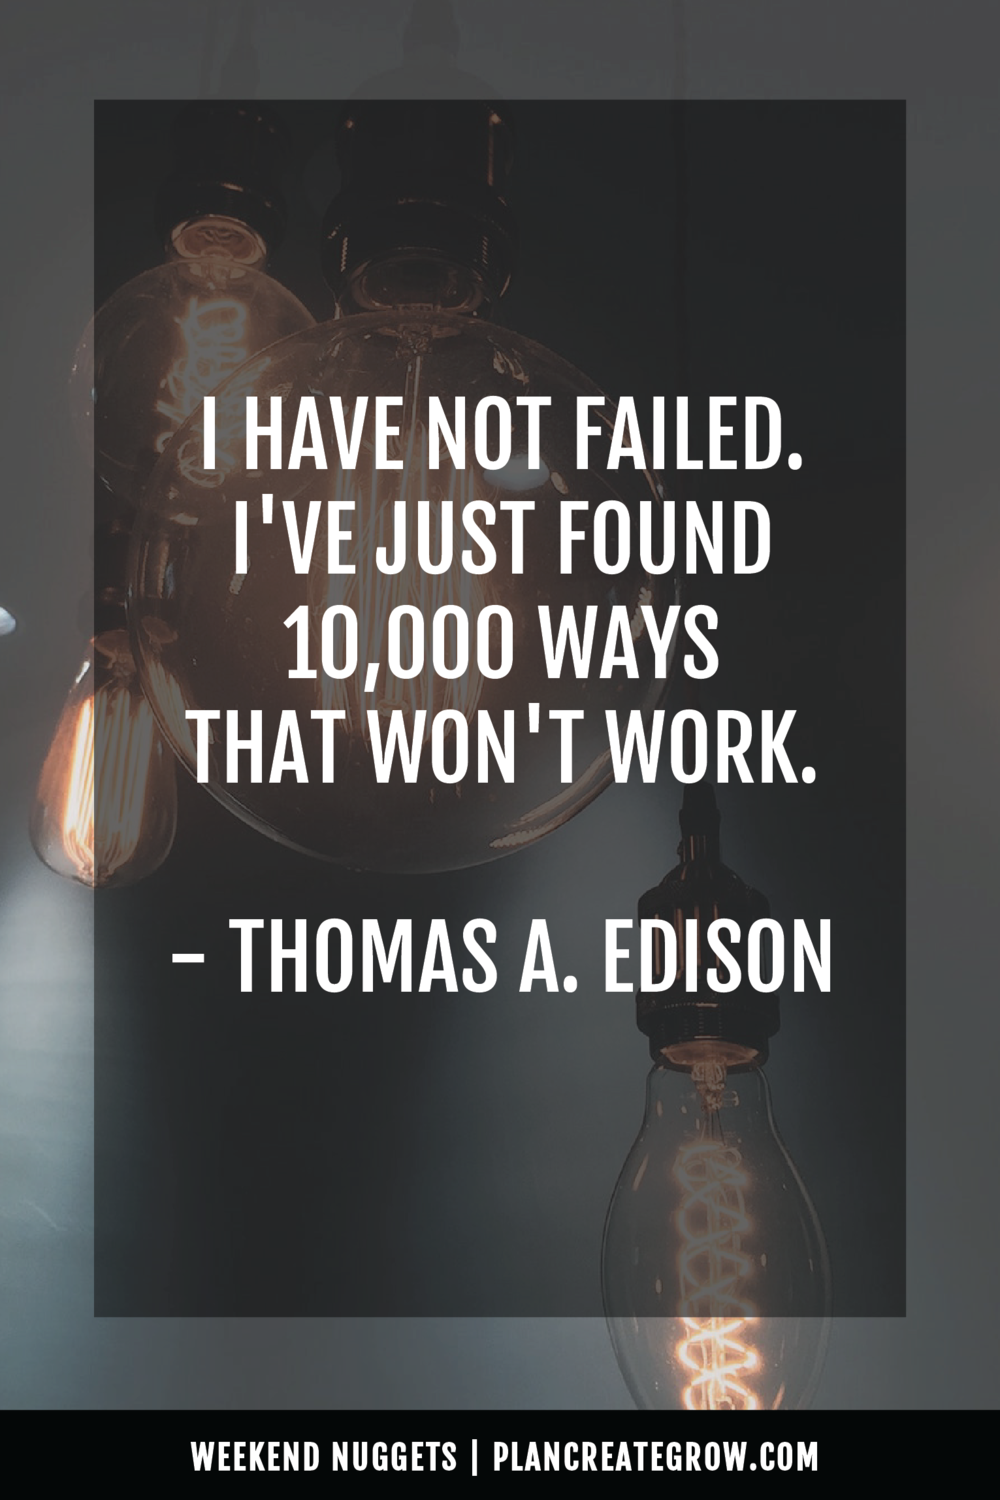 """I have not failed. I've just found 10,000 ways that won't work."" - Thomas A. Edison  This image forms part of a series called Weekend Nuggets - a collection of quotes and ideas curated to delight and inspire - shared each weekend. For more, visit plancreategrow.com/weekend-nuggets."